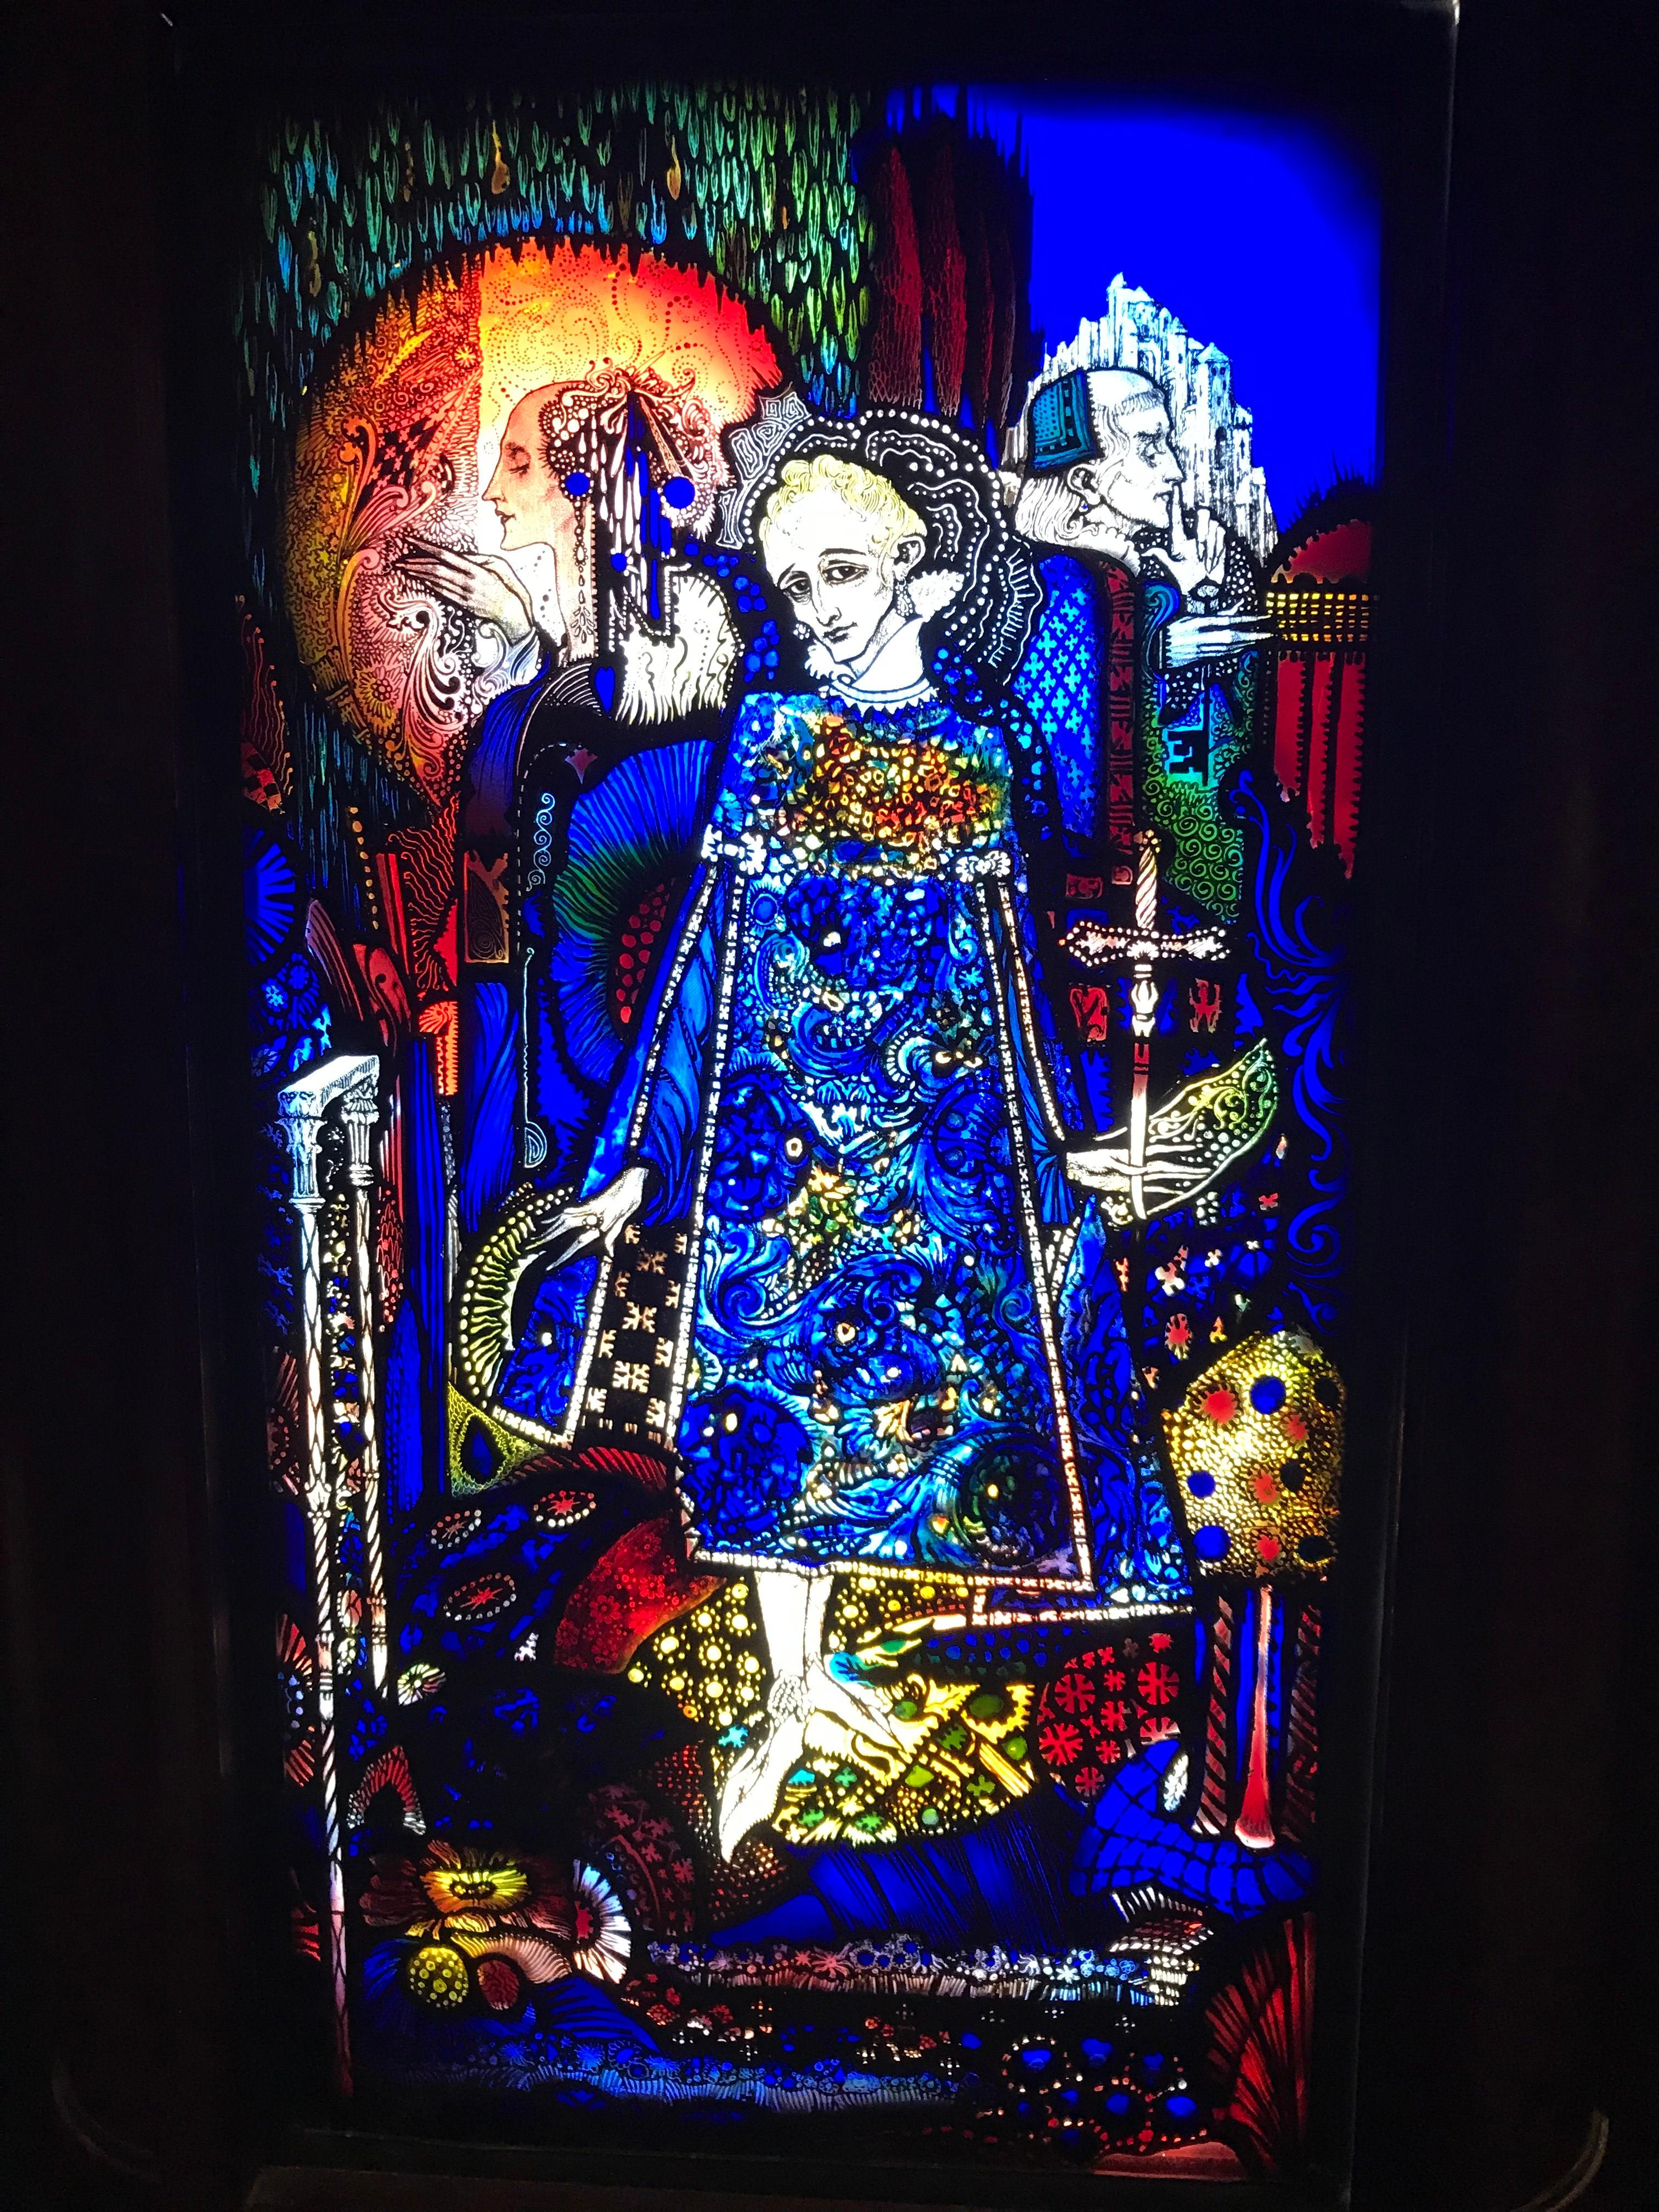 CAPAStudyAbroad_Dublin_Spring2018_From Brandon Mooney - Stained Glass Window in the National Gallery of Ireland.jpeg